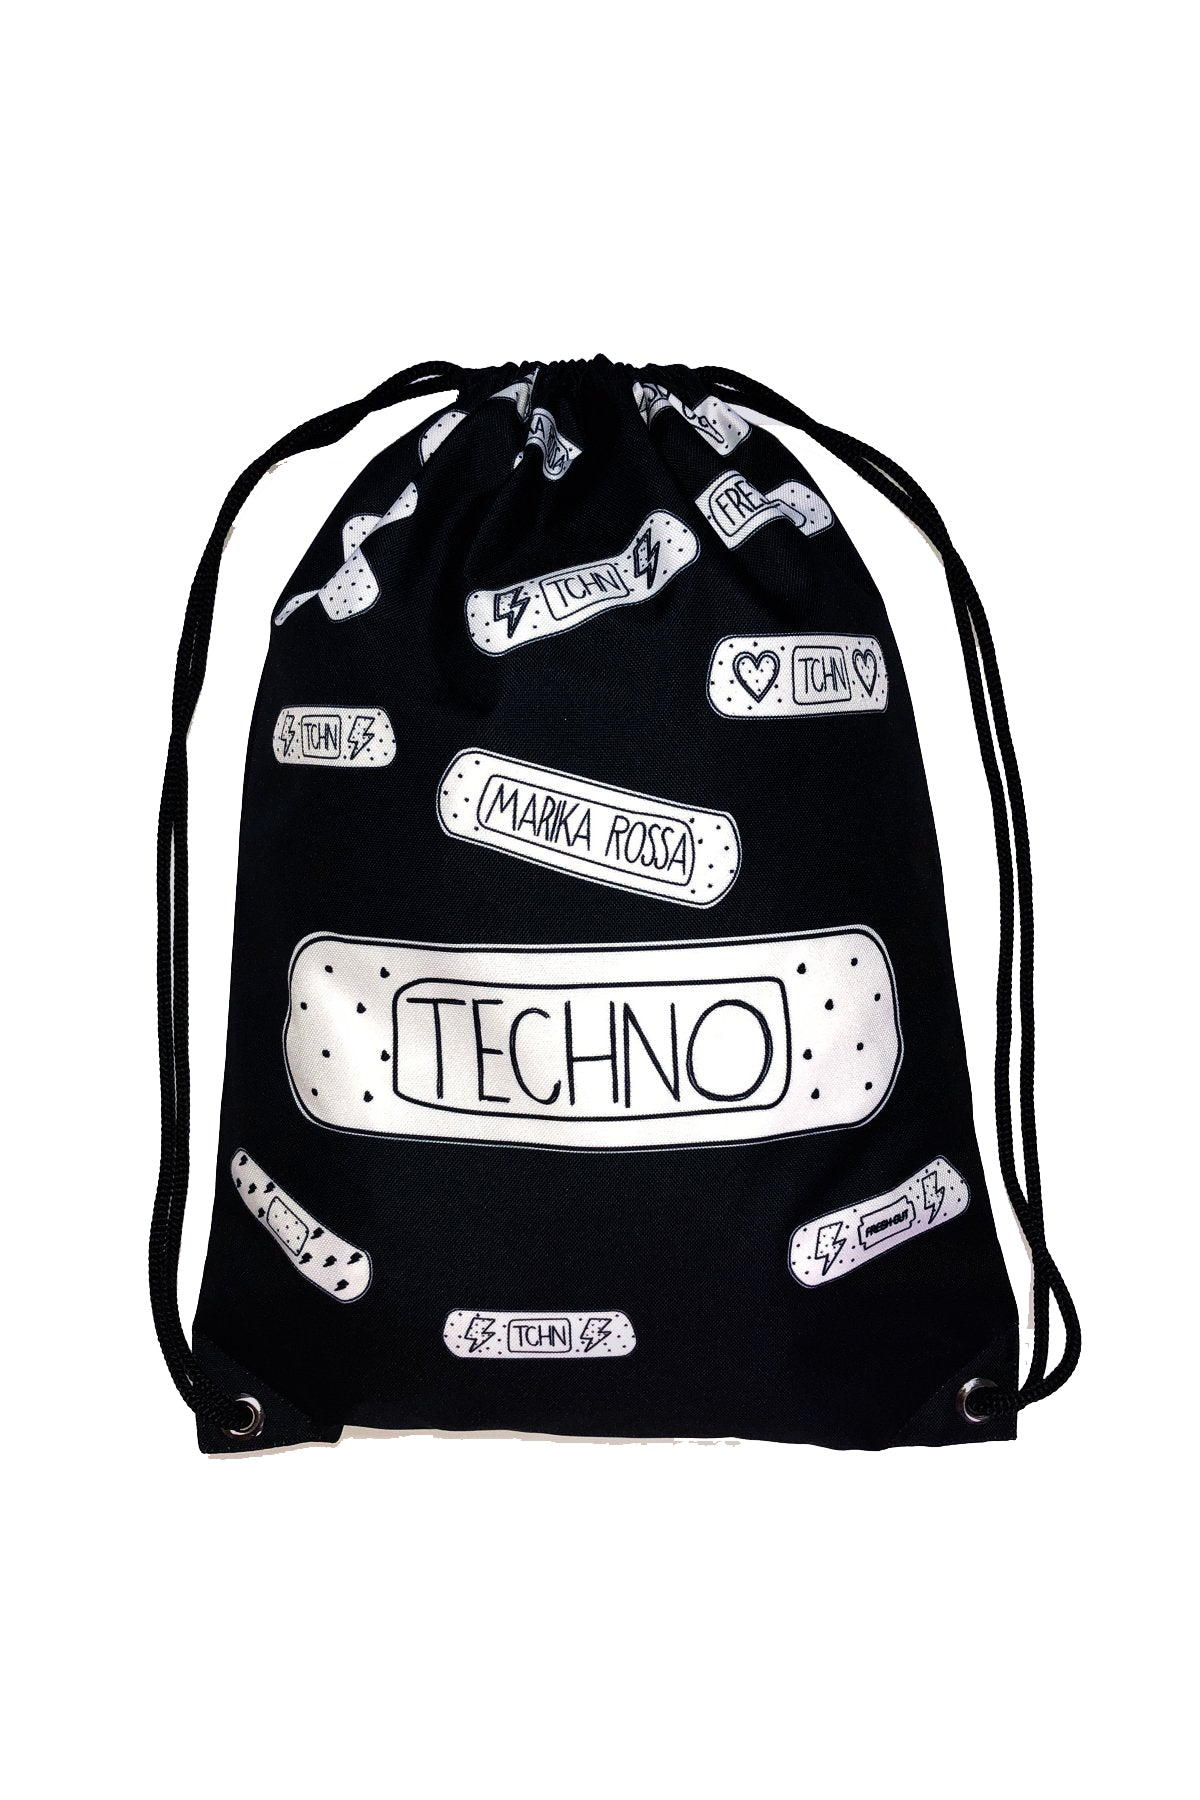 Techno Bandaids Backpacks [Black]